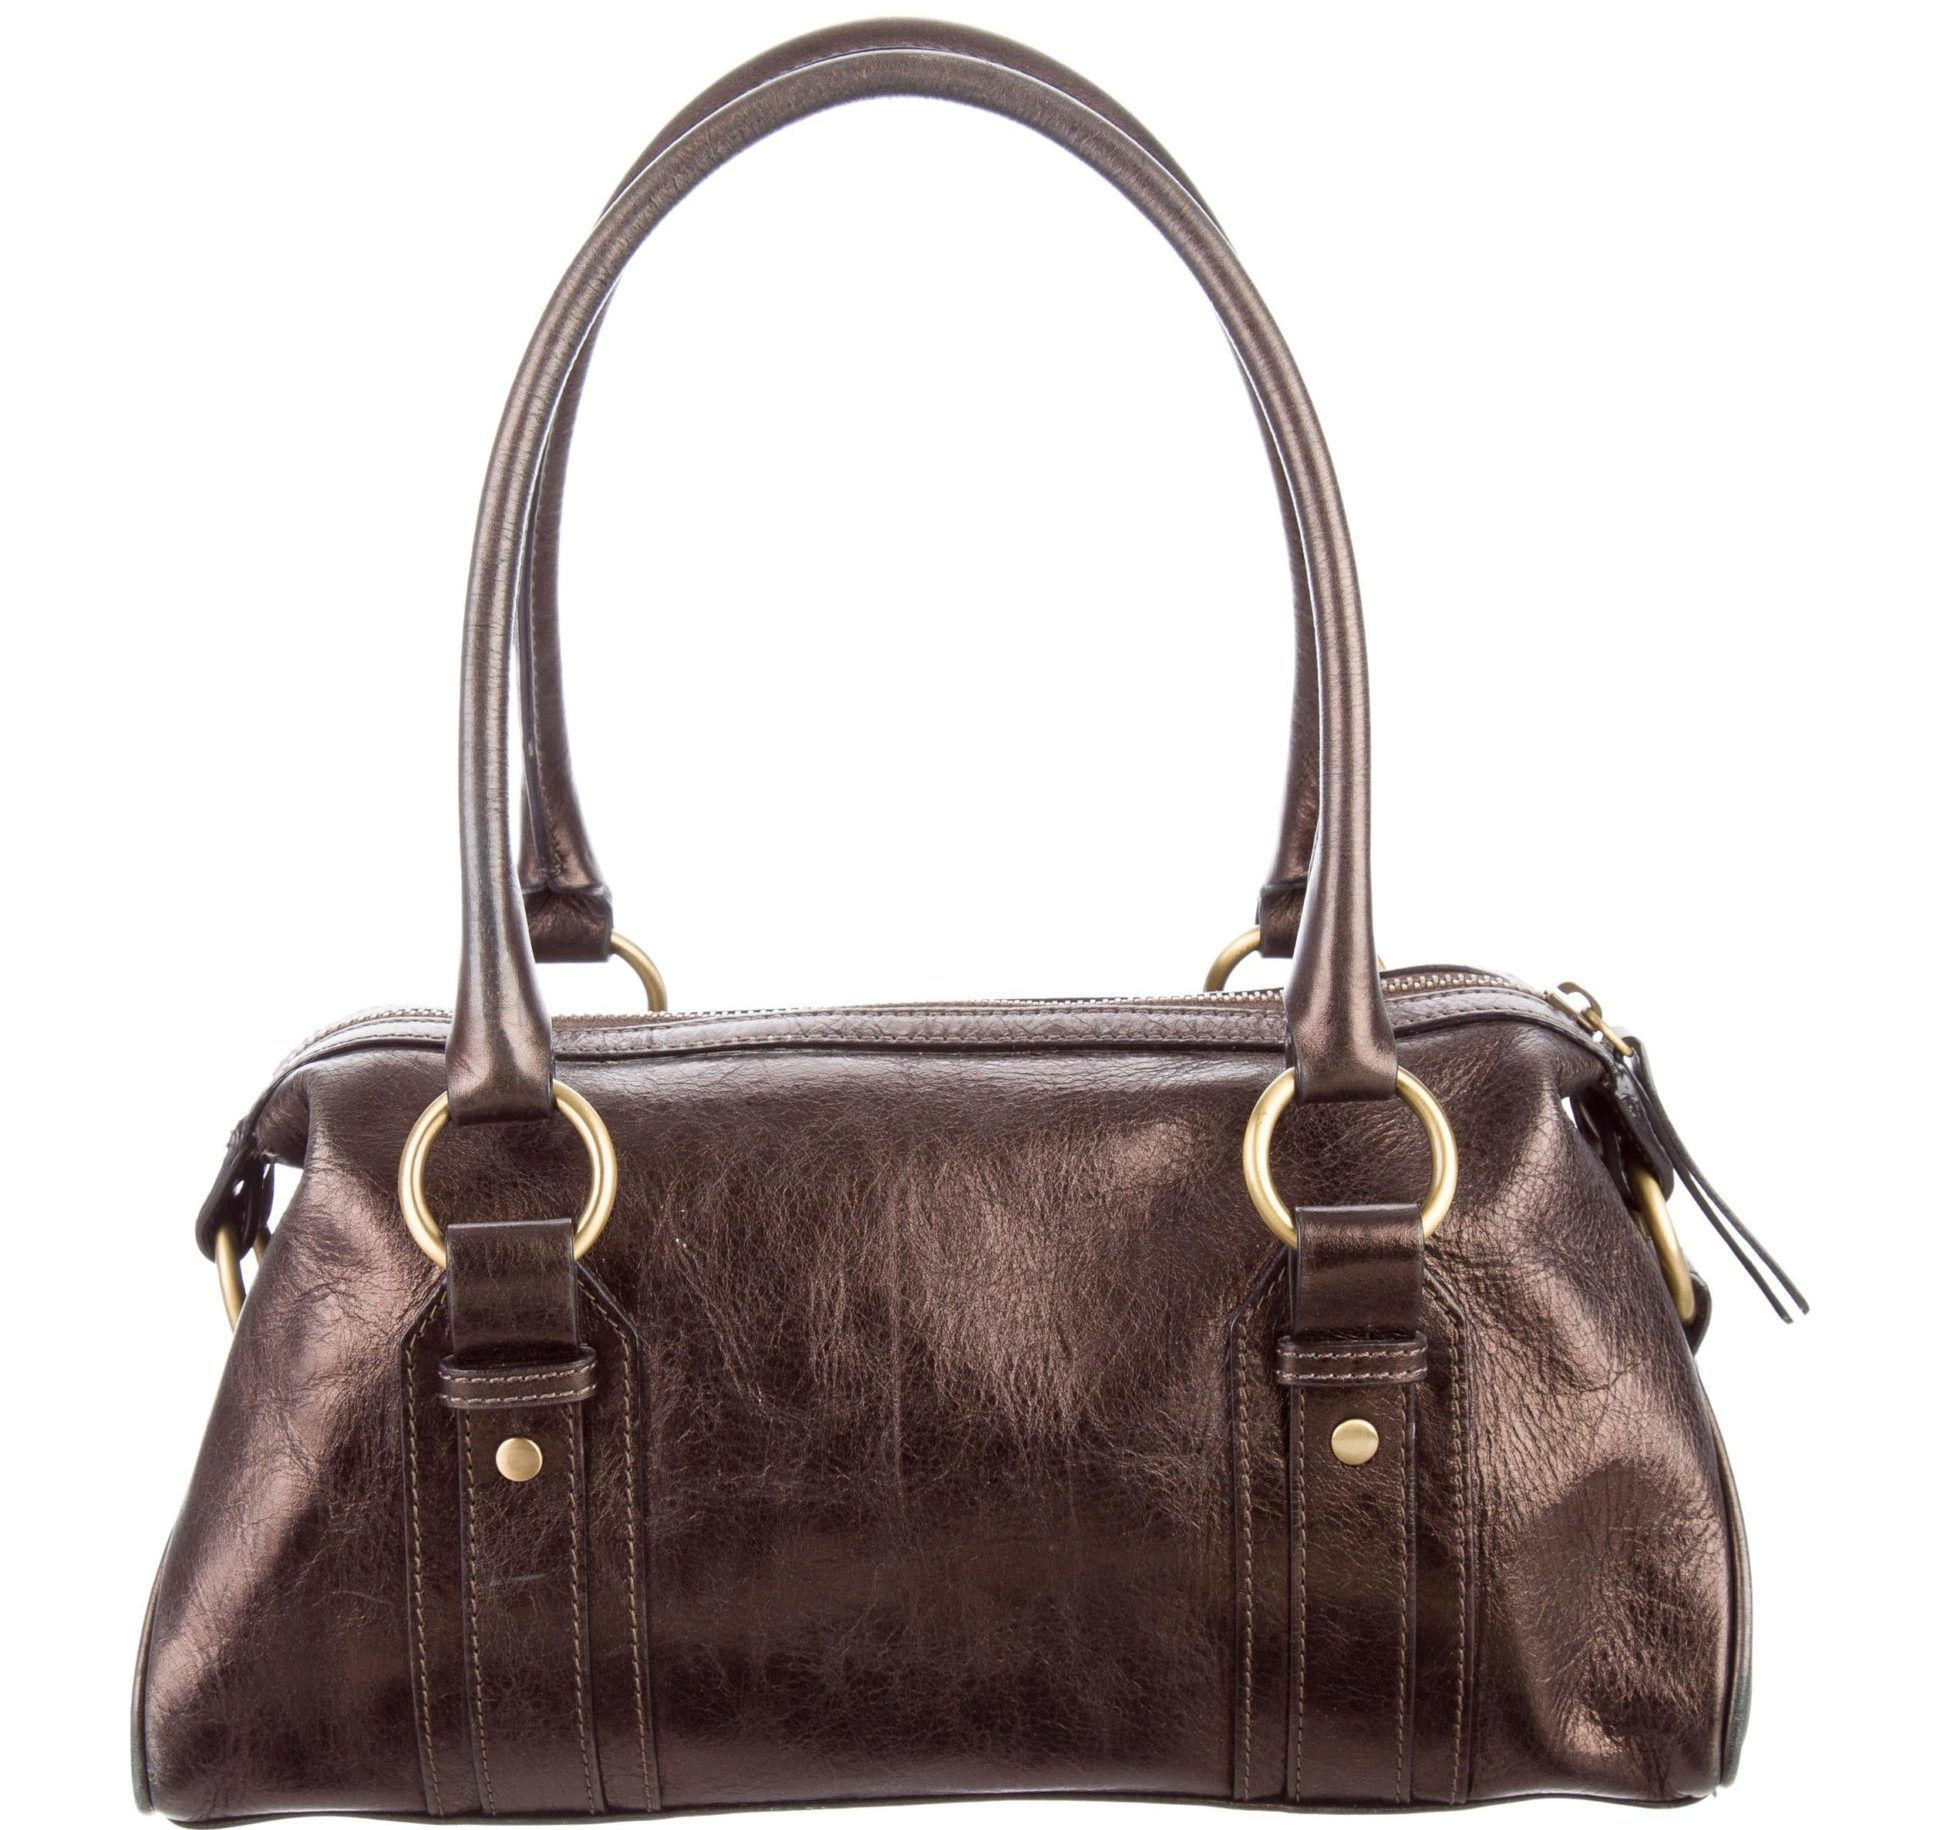 Prada Vitello Fall Women's Designer Leather Handbags: The Newest Collection